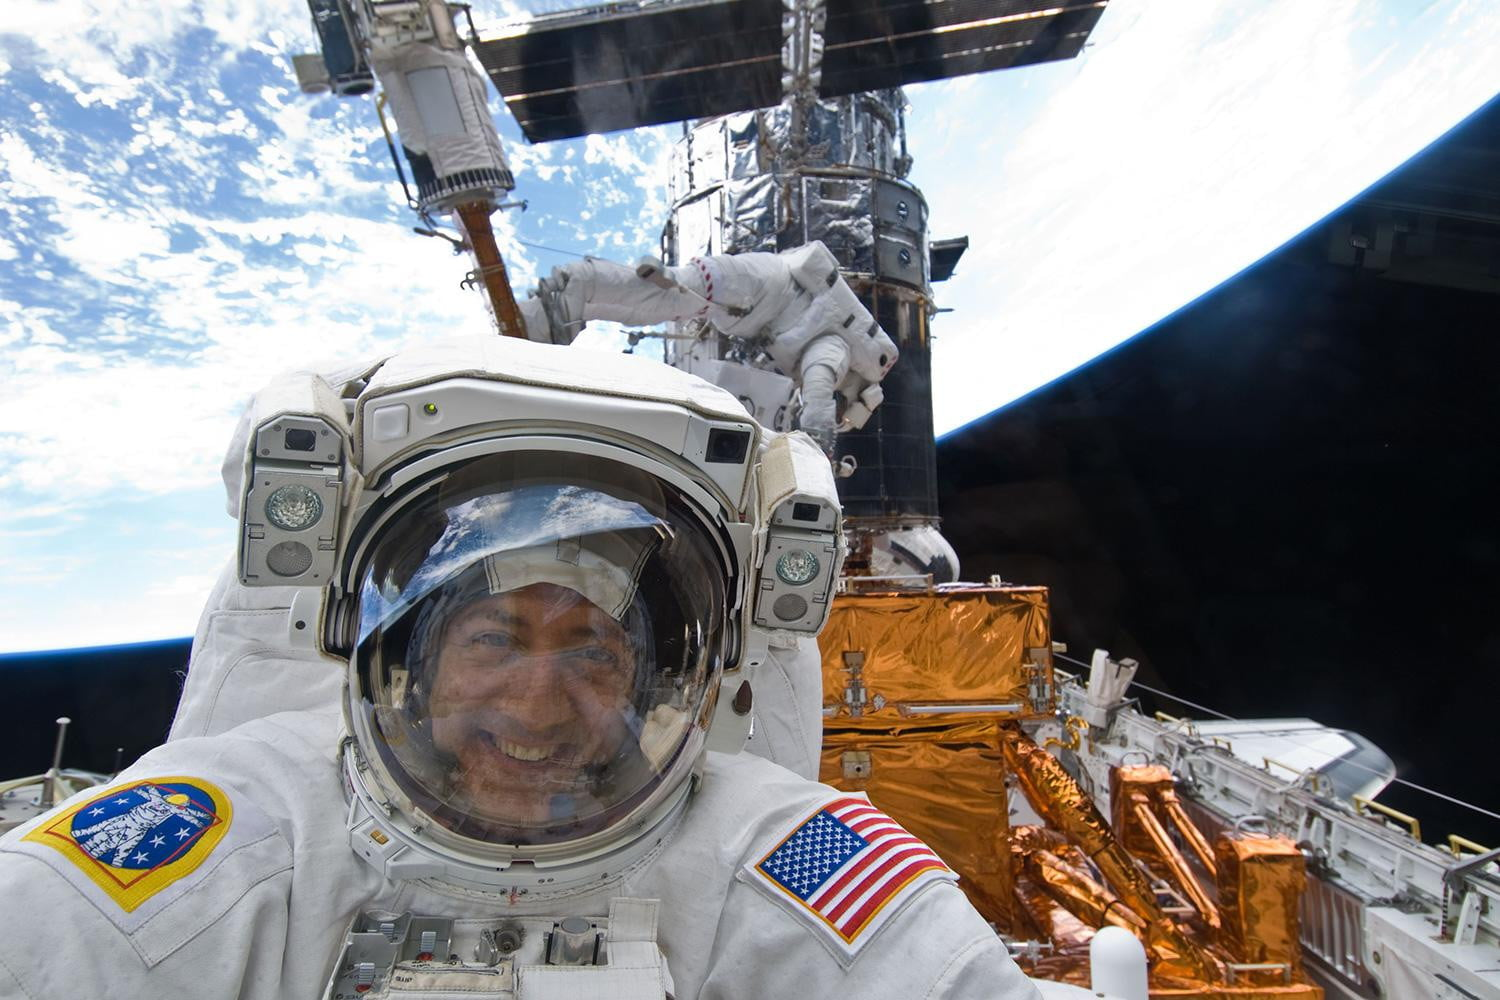 astronaut to space - photo #27